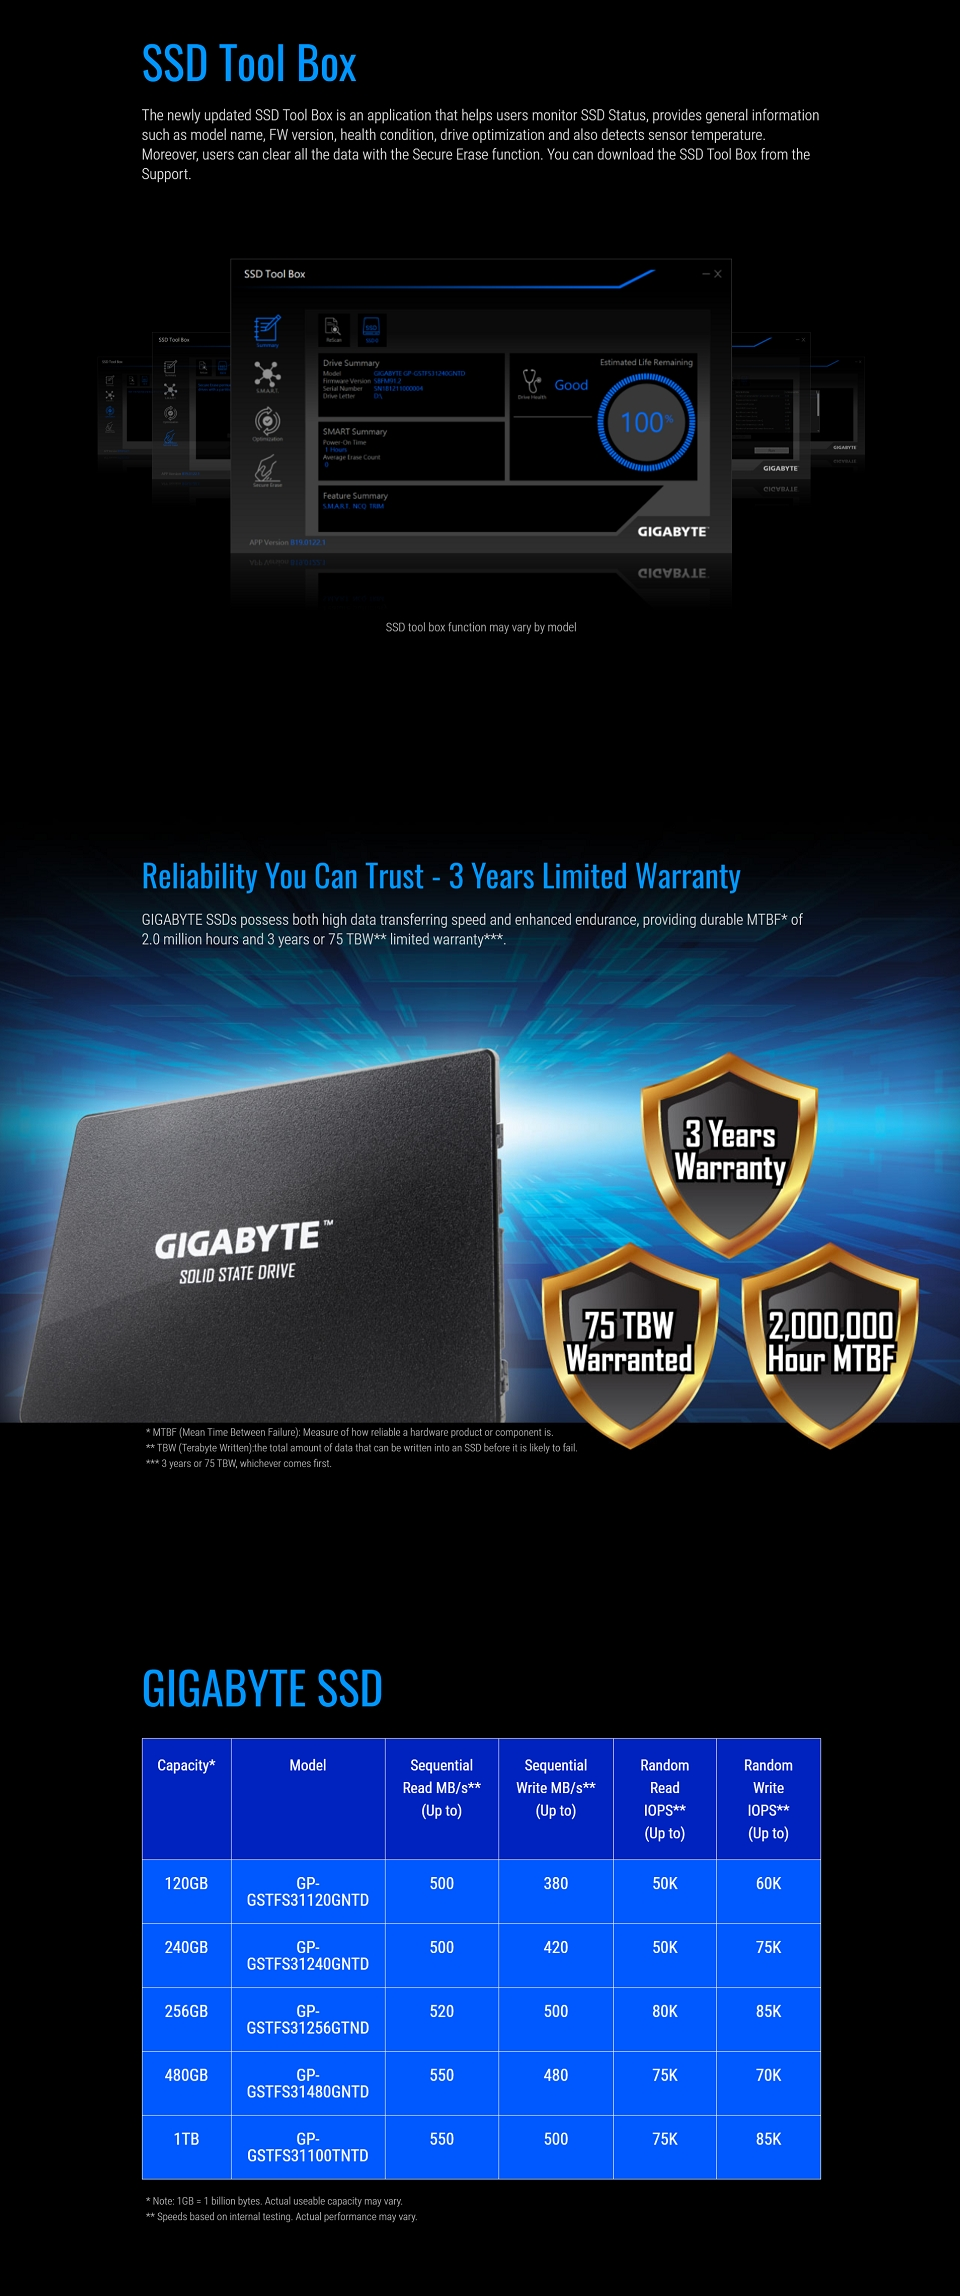 Gigabyte SATA 2.5in SSD 120GB features 2